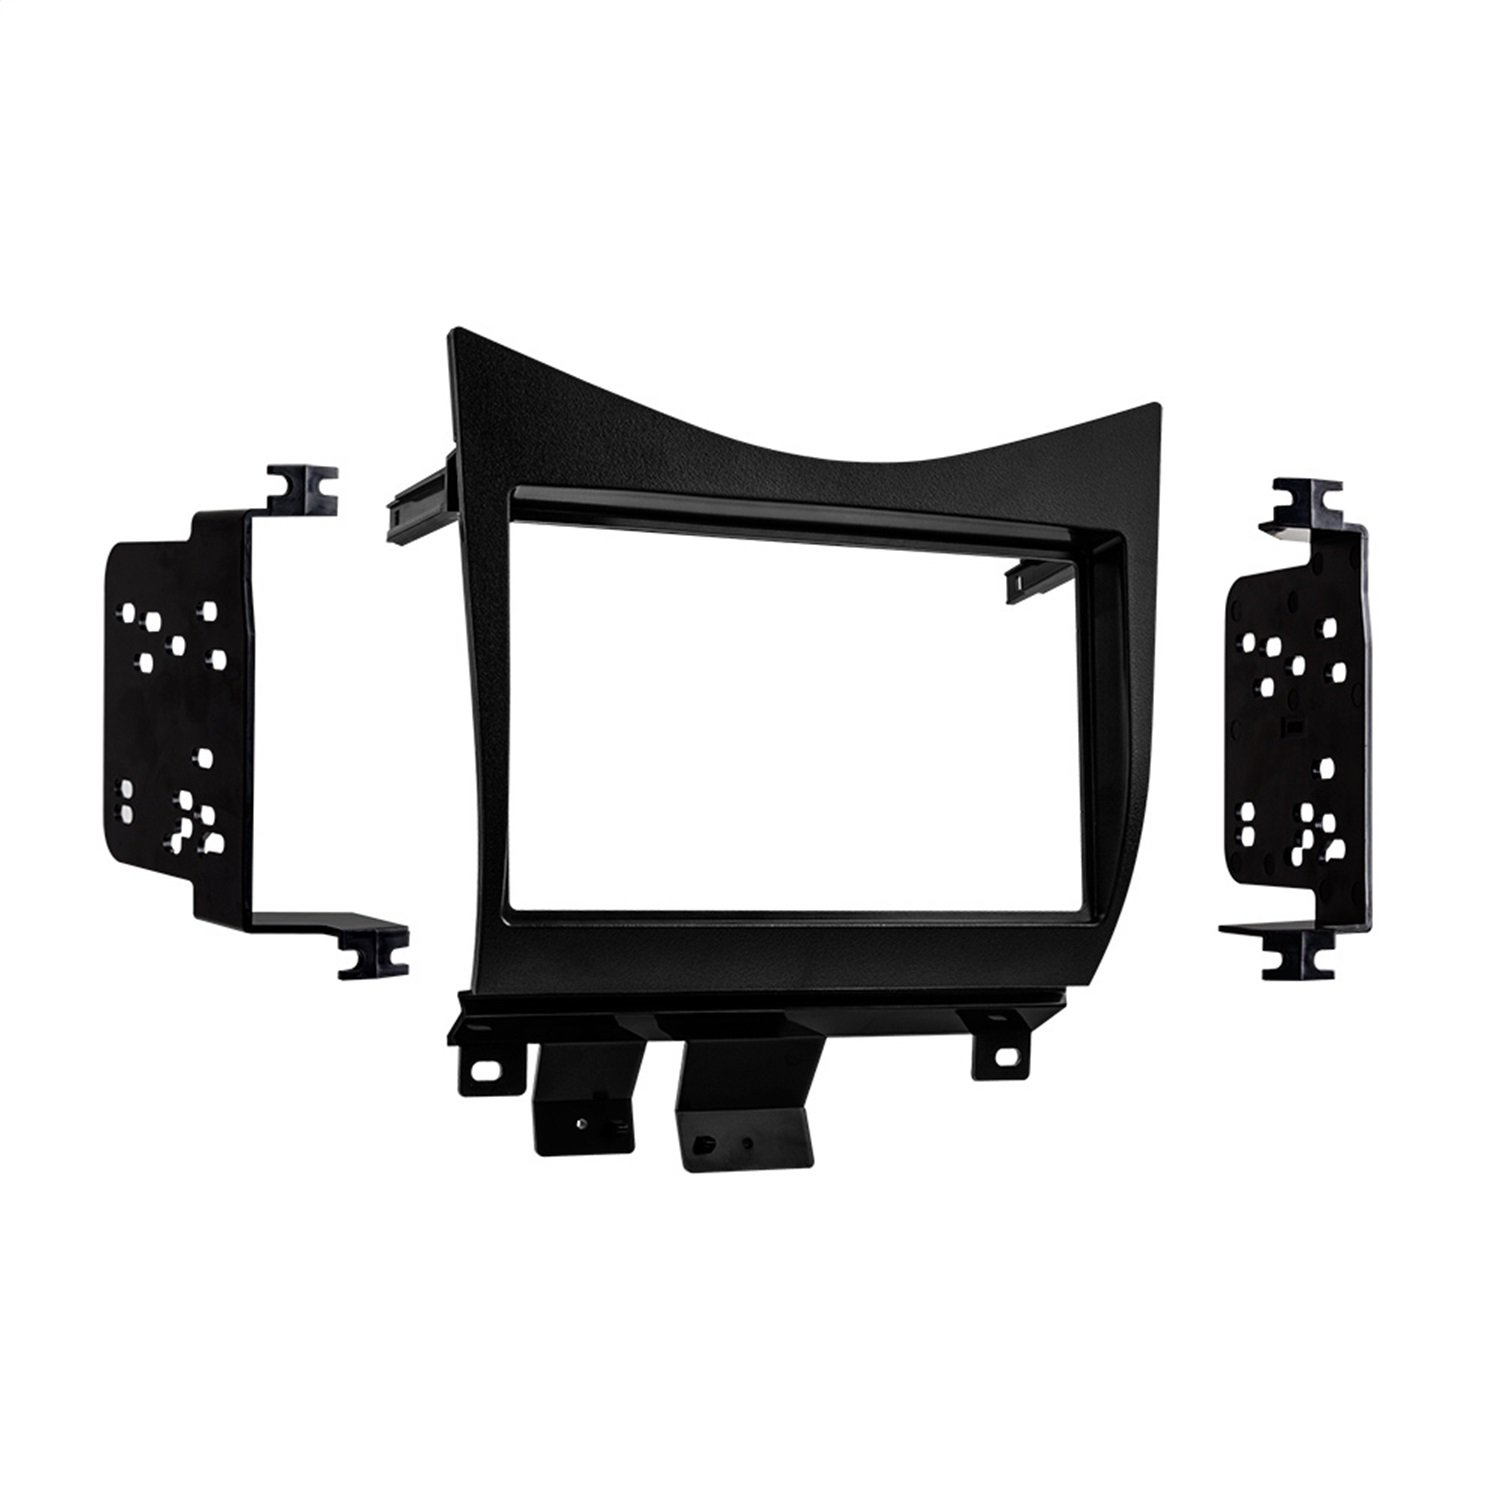 Metra 95-7862 Double DIN Installation Dash Kit for Honda Accord (Black)